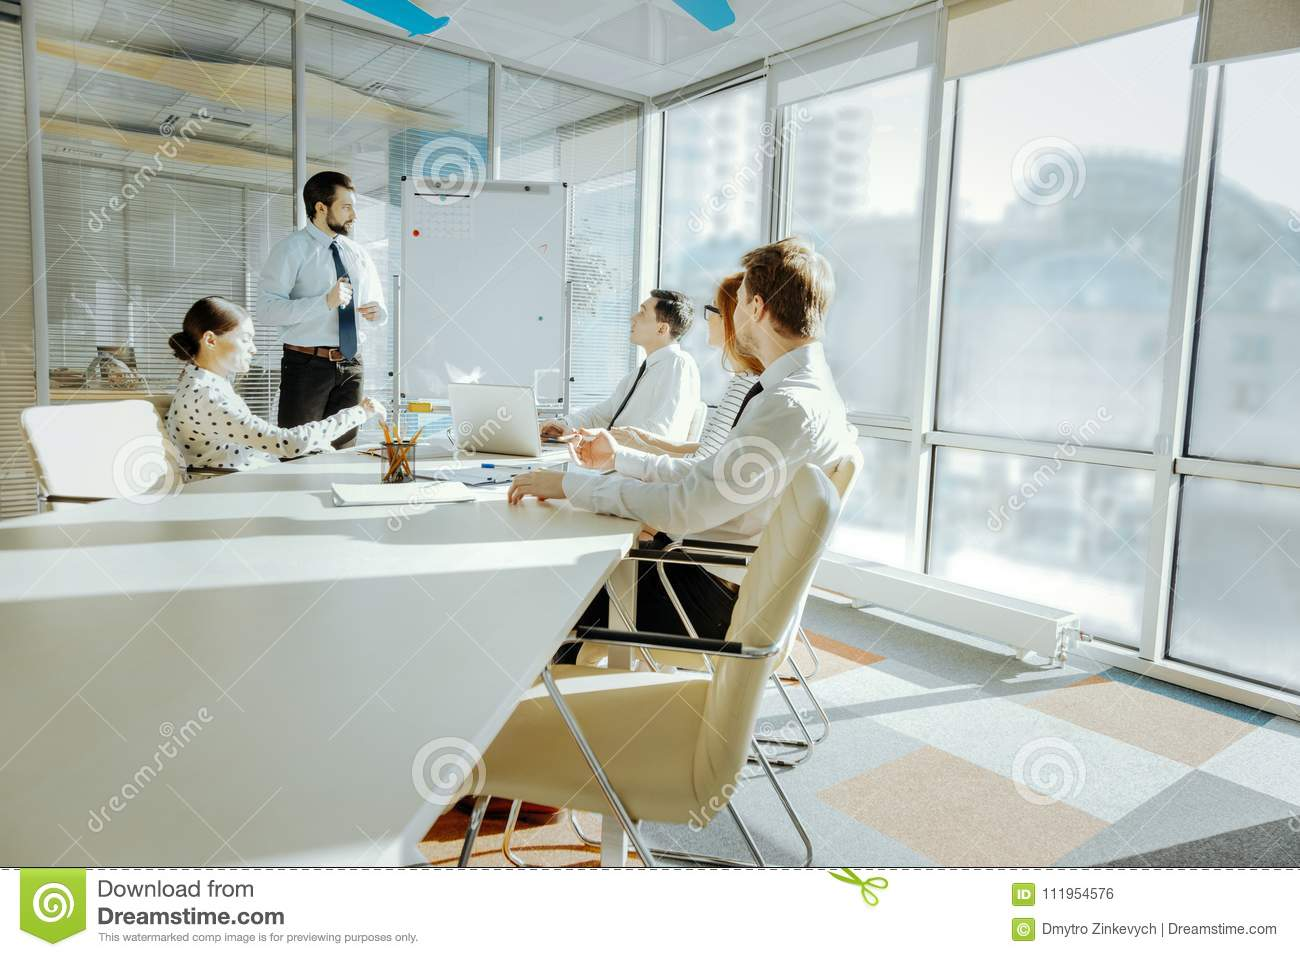 Pleasant Pleasant Colleagues Listening To Report In Conference Room Home Interior And Landscaping Ponolsignezvosmurscom